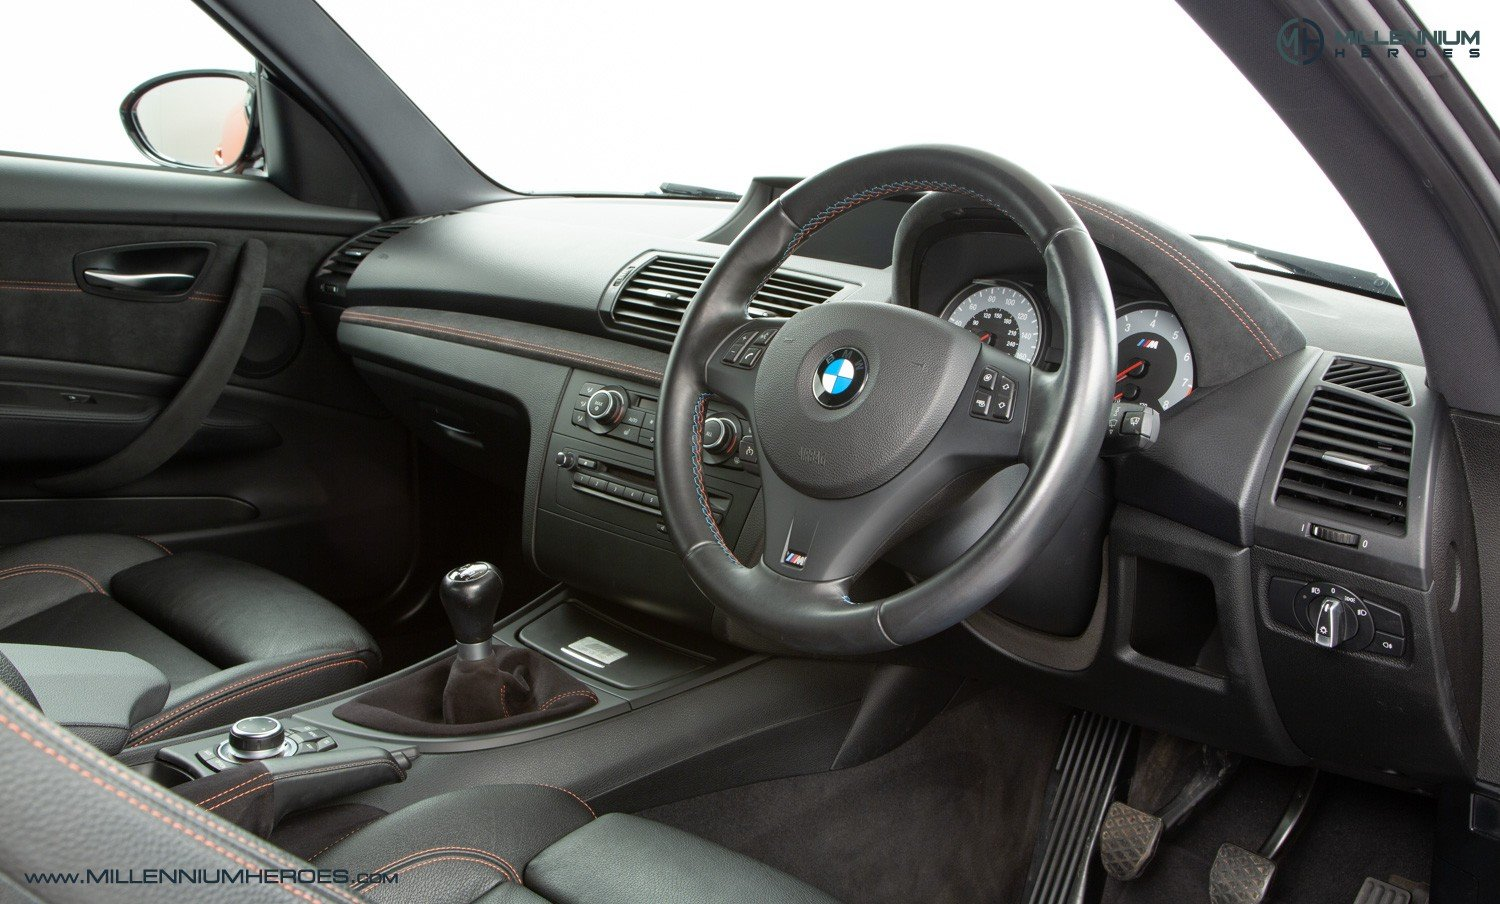 2011 BMW 1M COUPE  For Sale (picture 4 of 6)